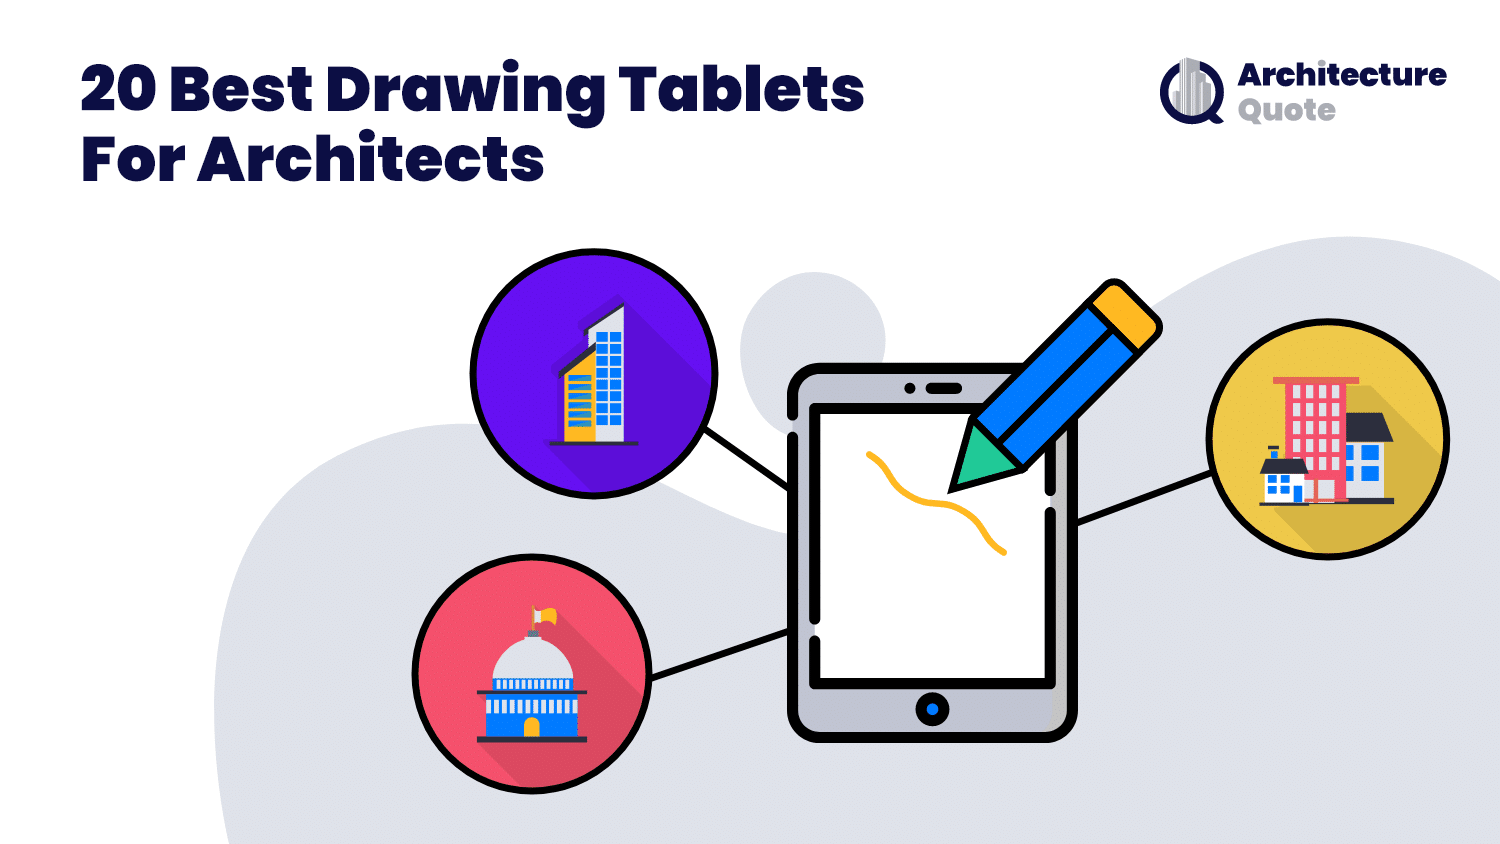 20 Best Drawing Tablets for Architects [2020 Update]